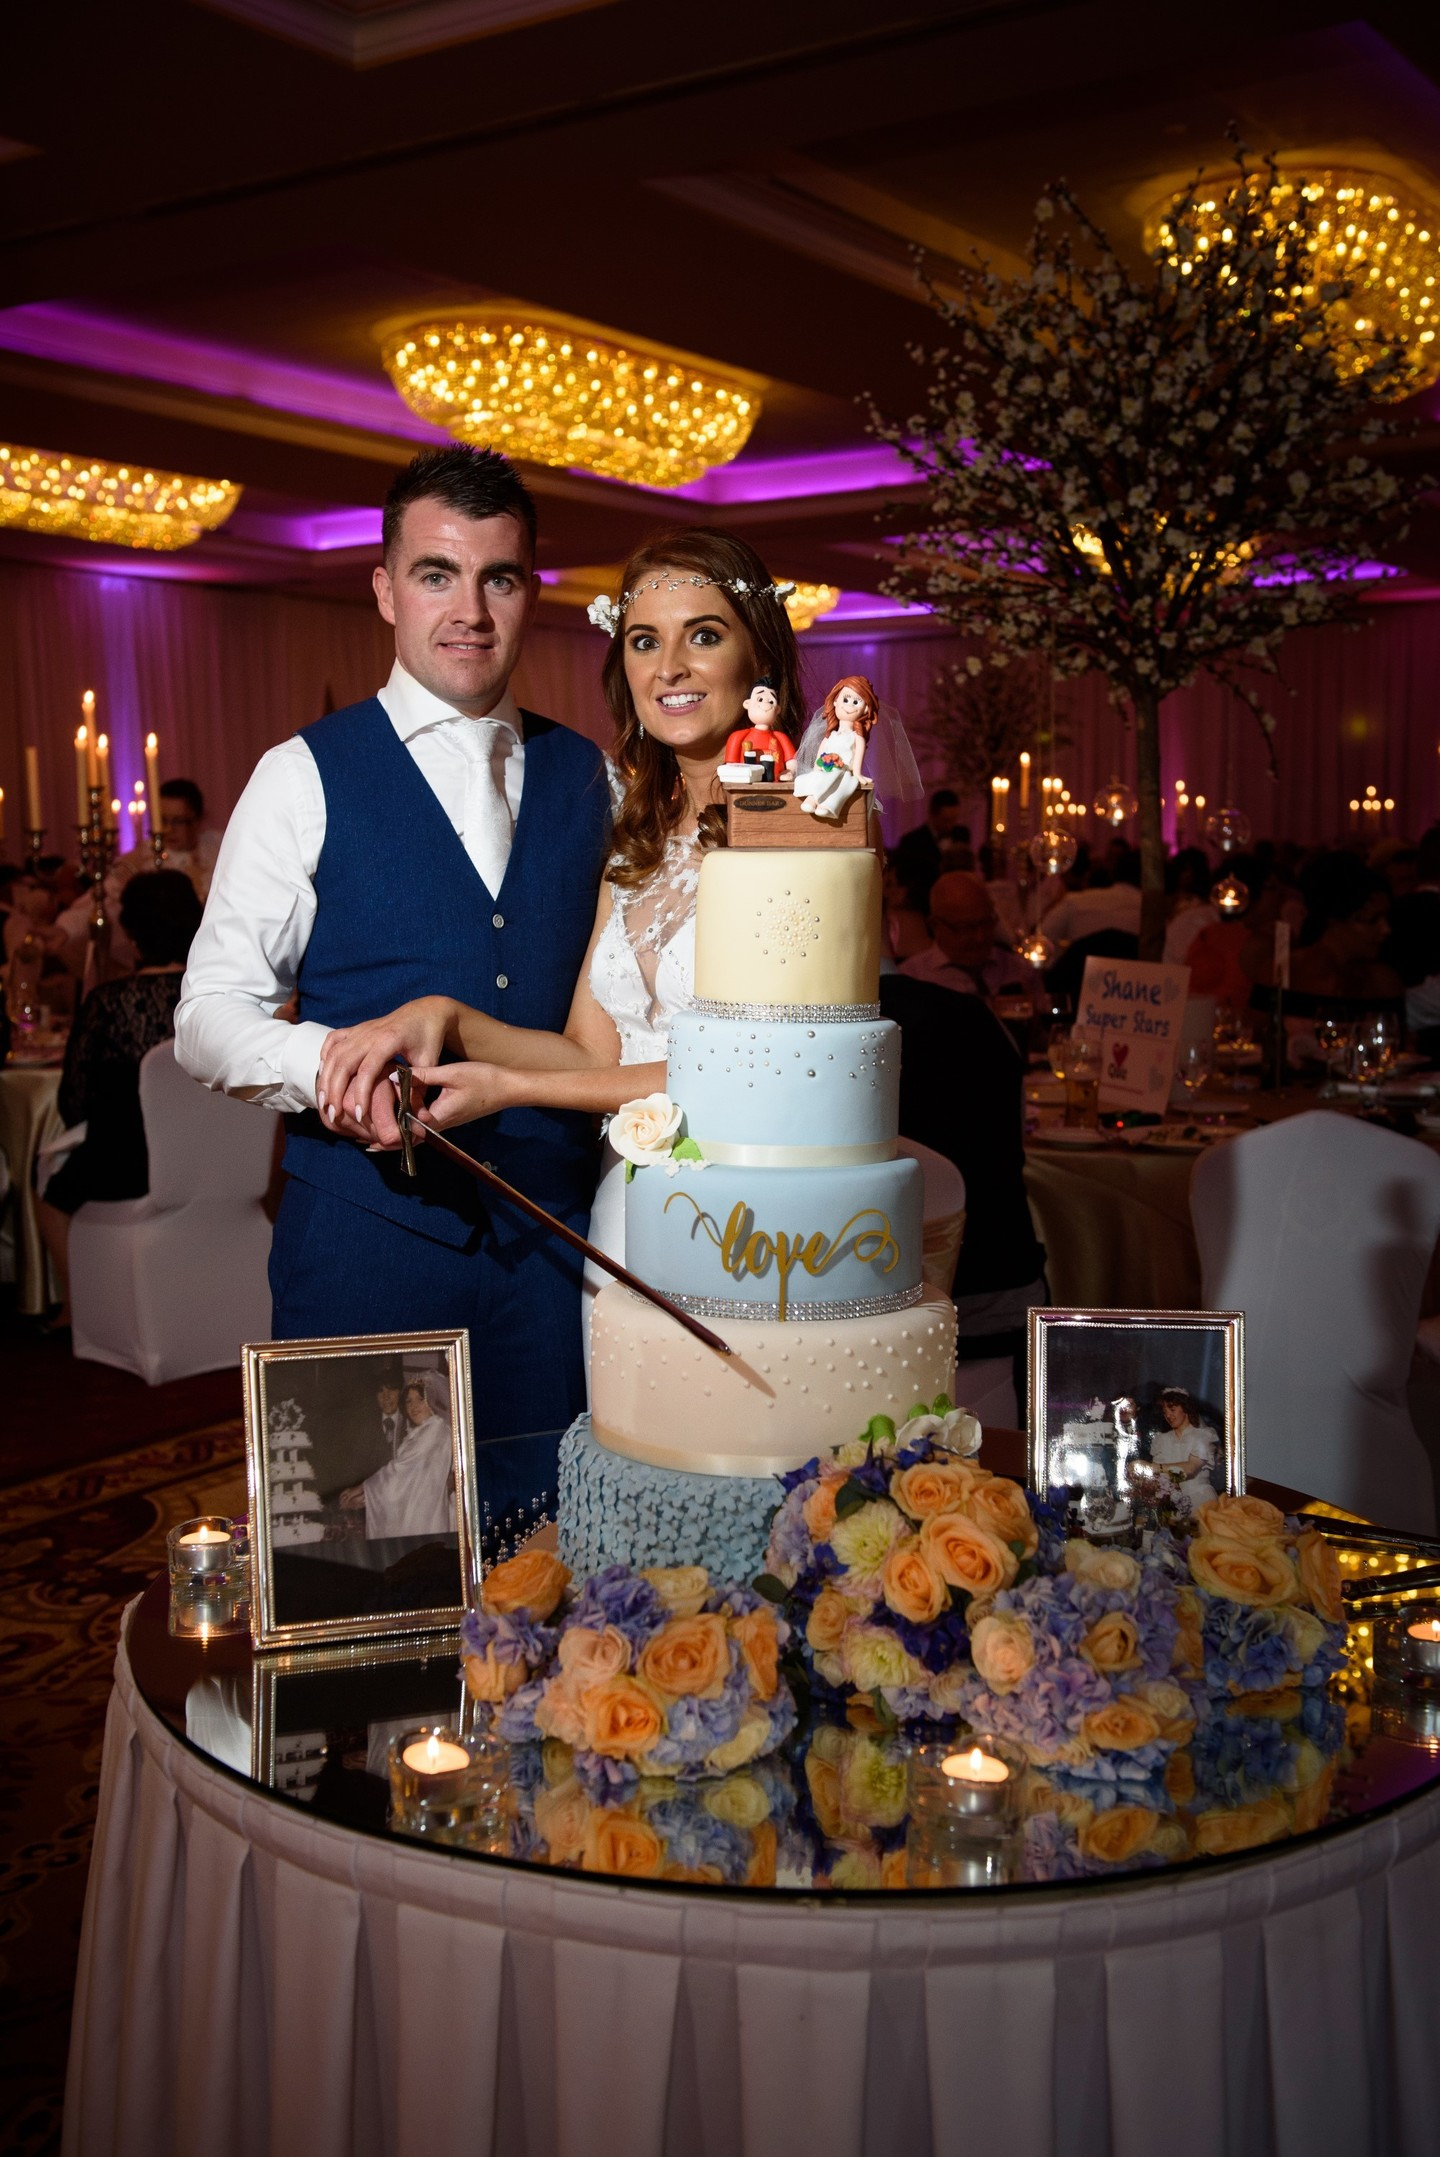 Cannaboe pamela and shanes wedding cake at kilronan castle